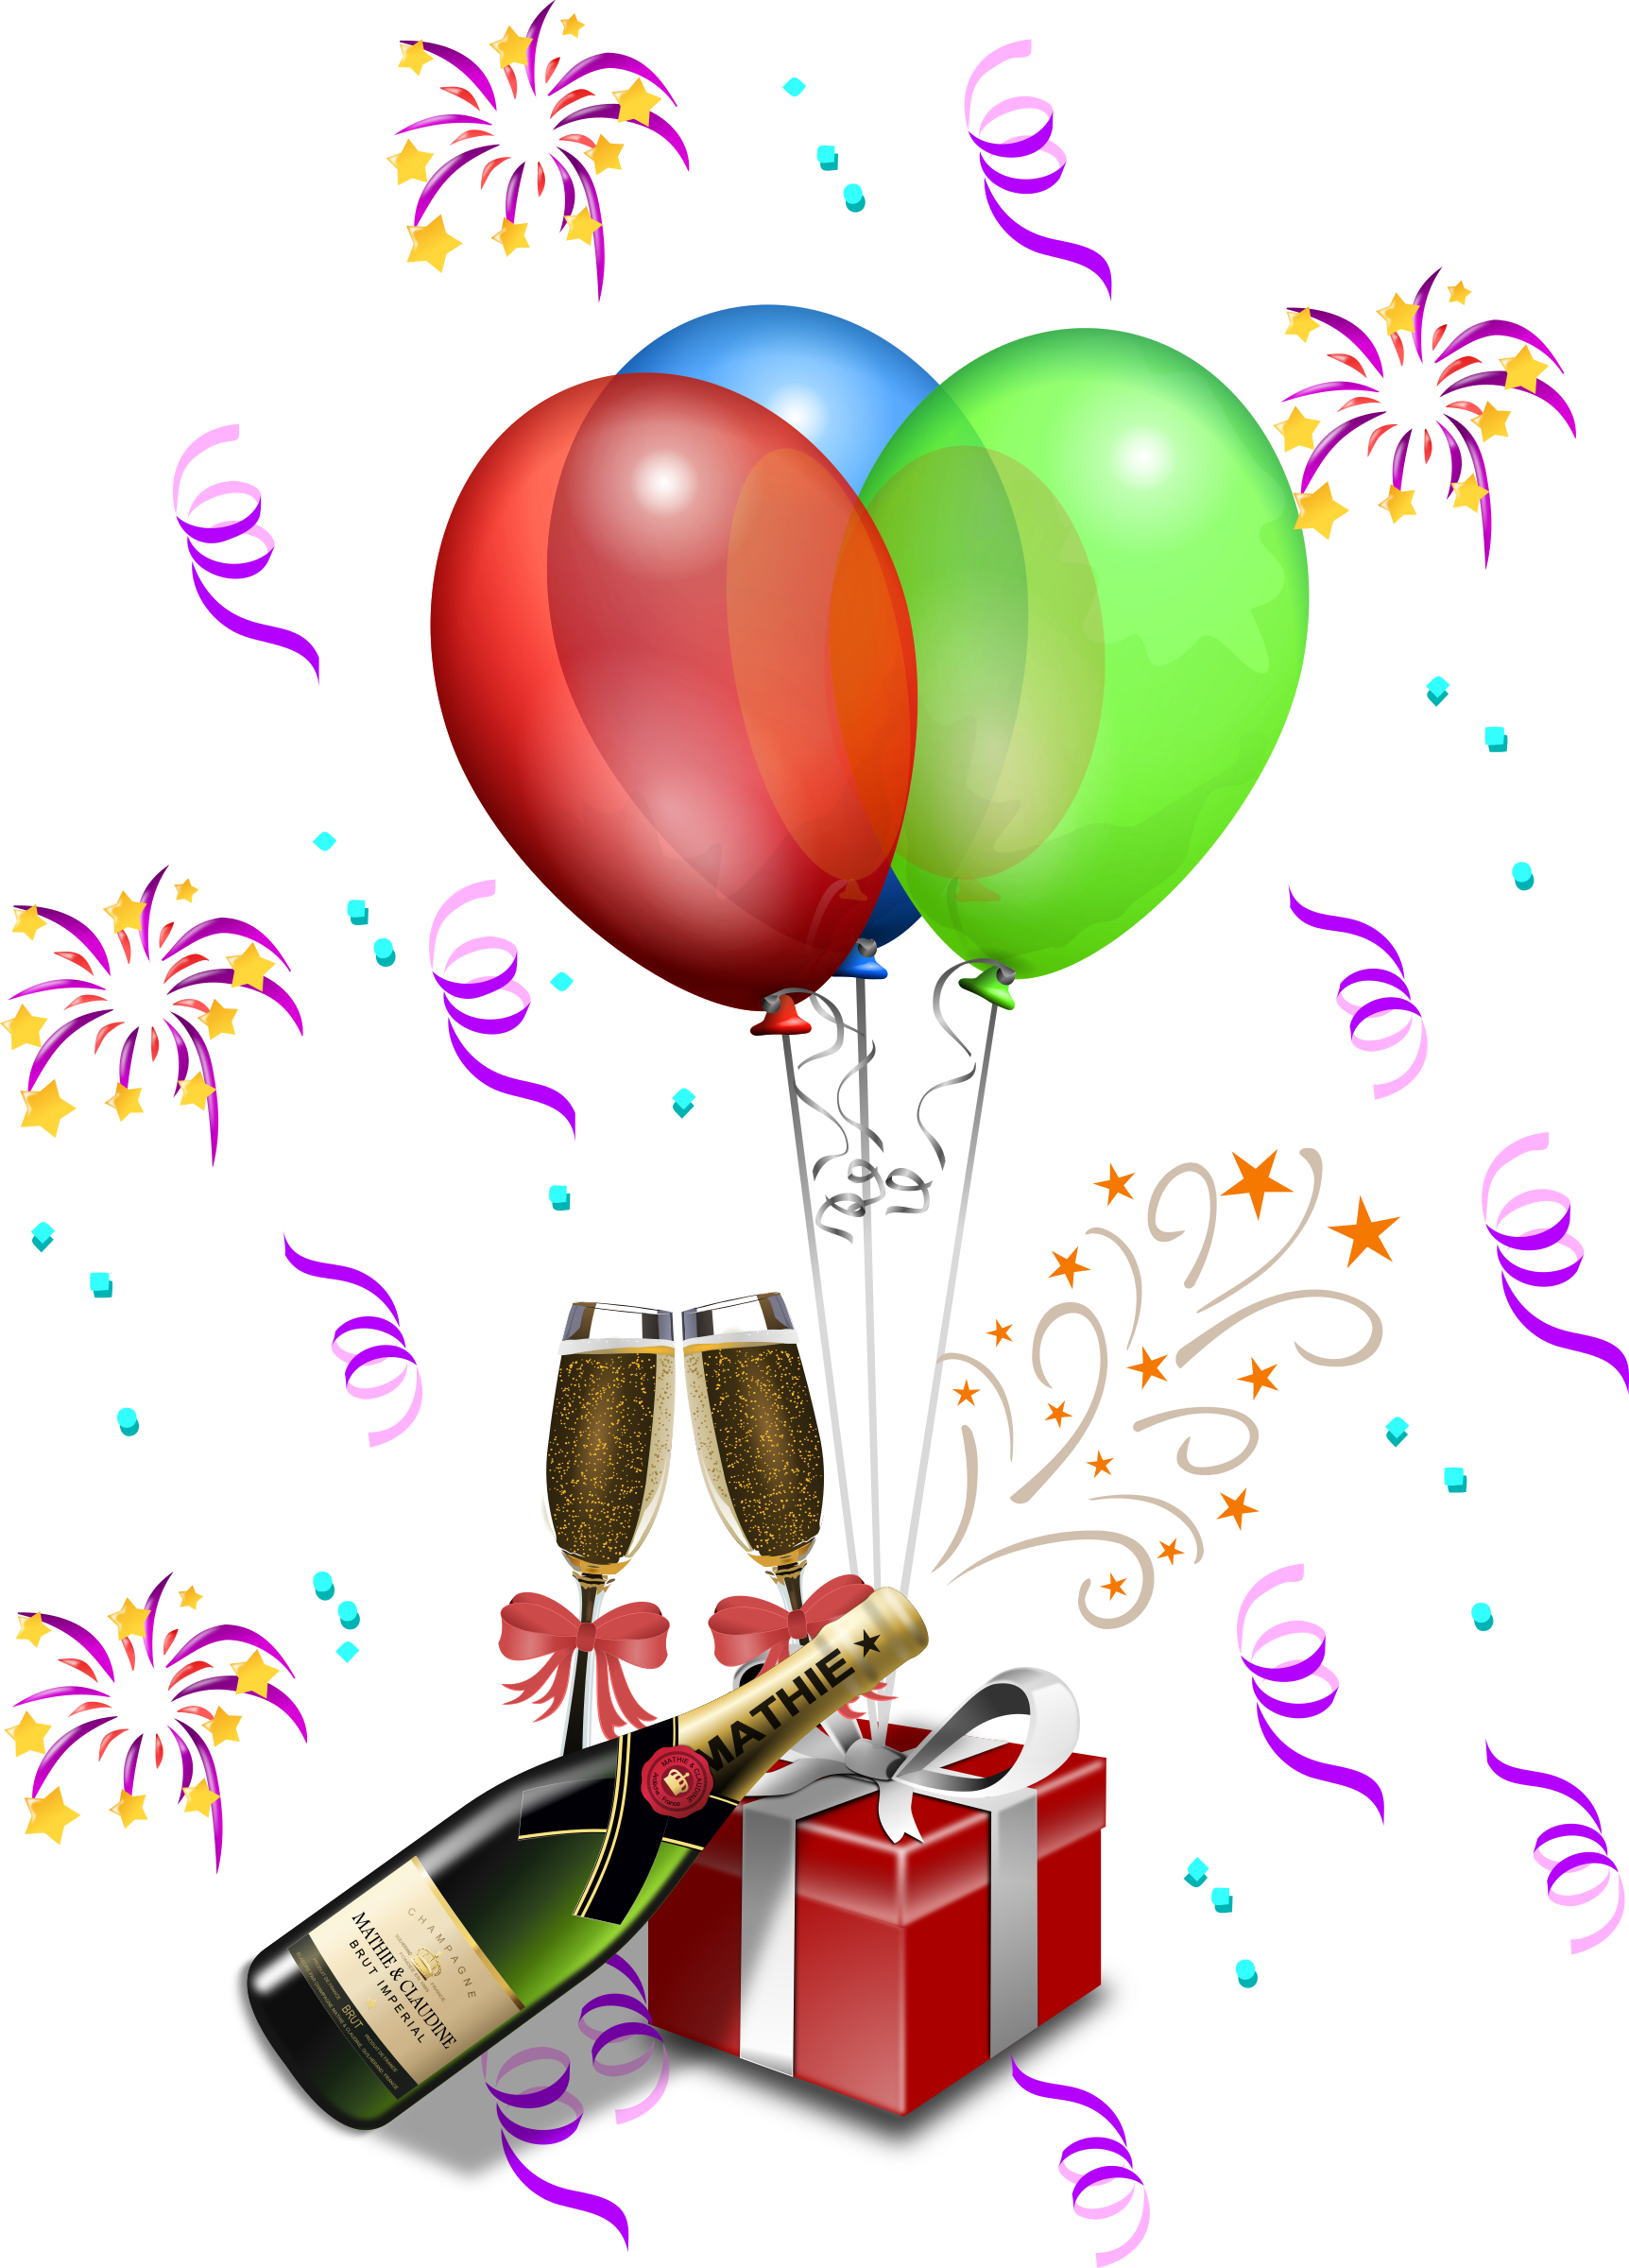 Champagne showers big image. Clipart glasses new year